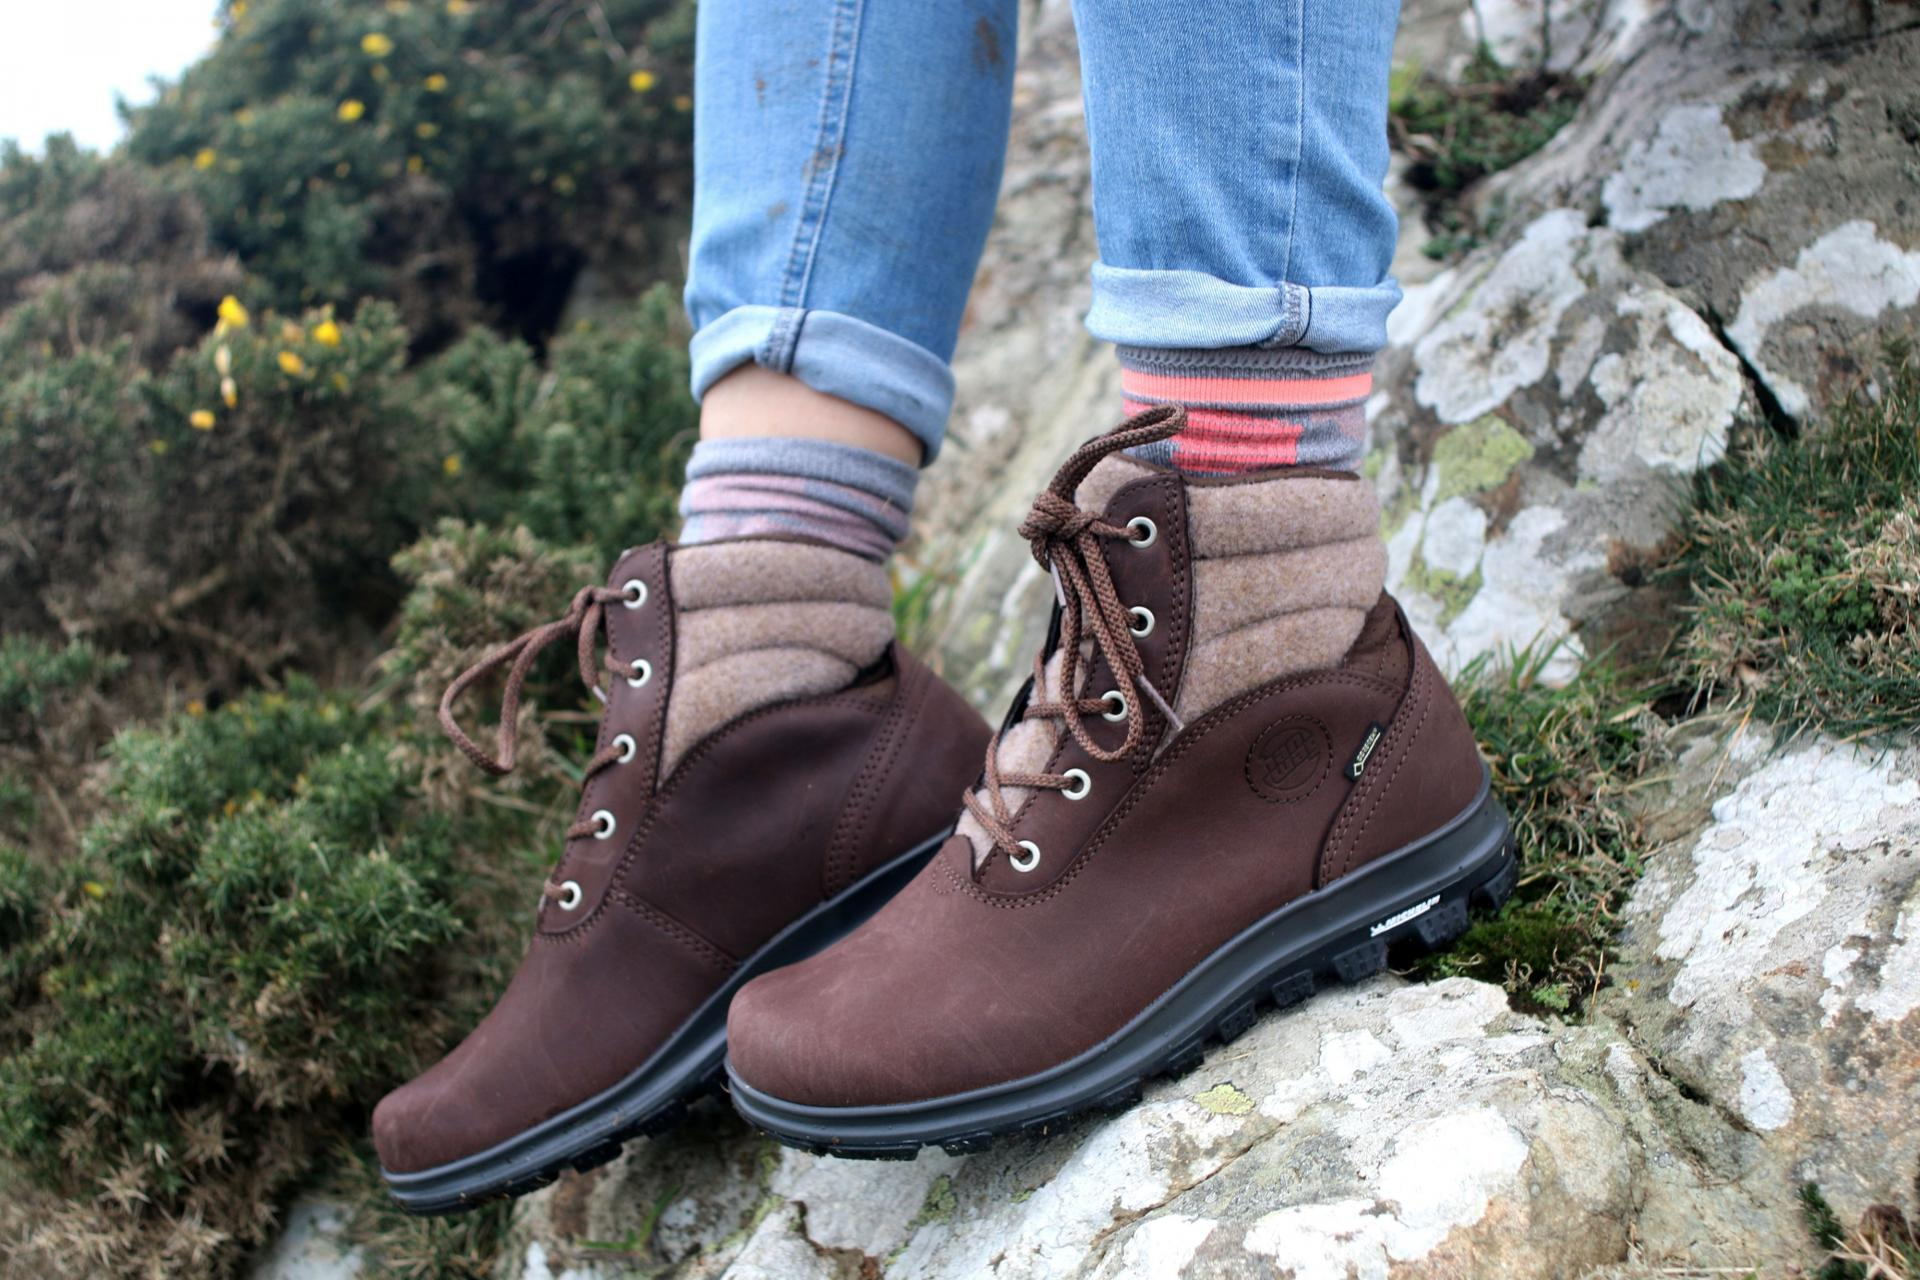 Review Hanwag Aotea boots